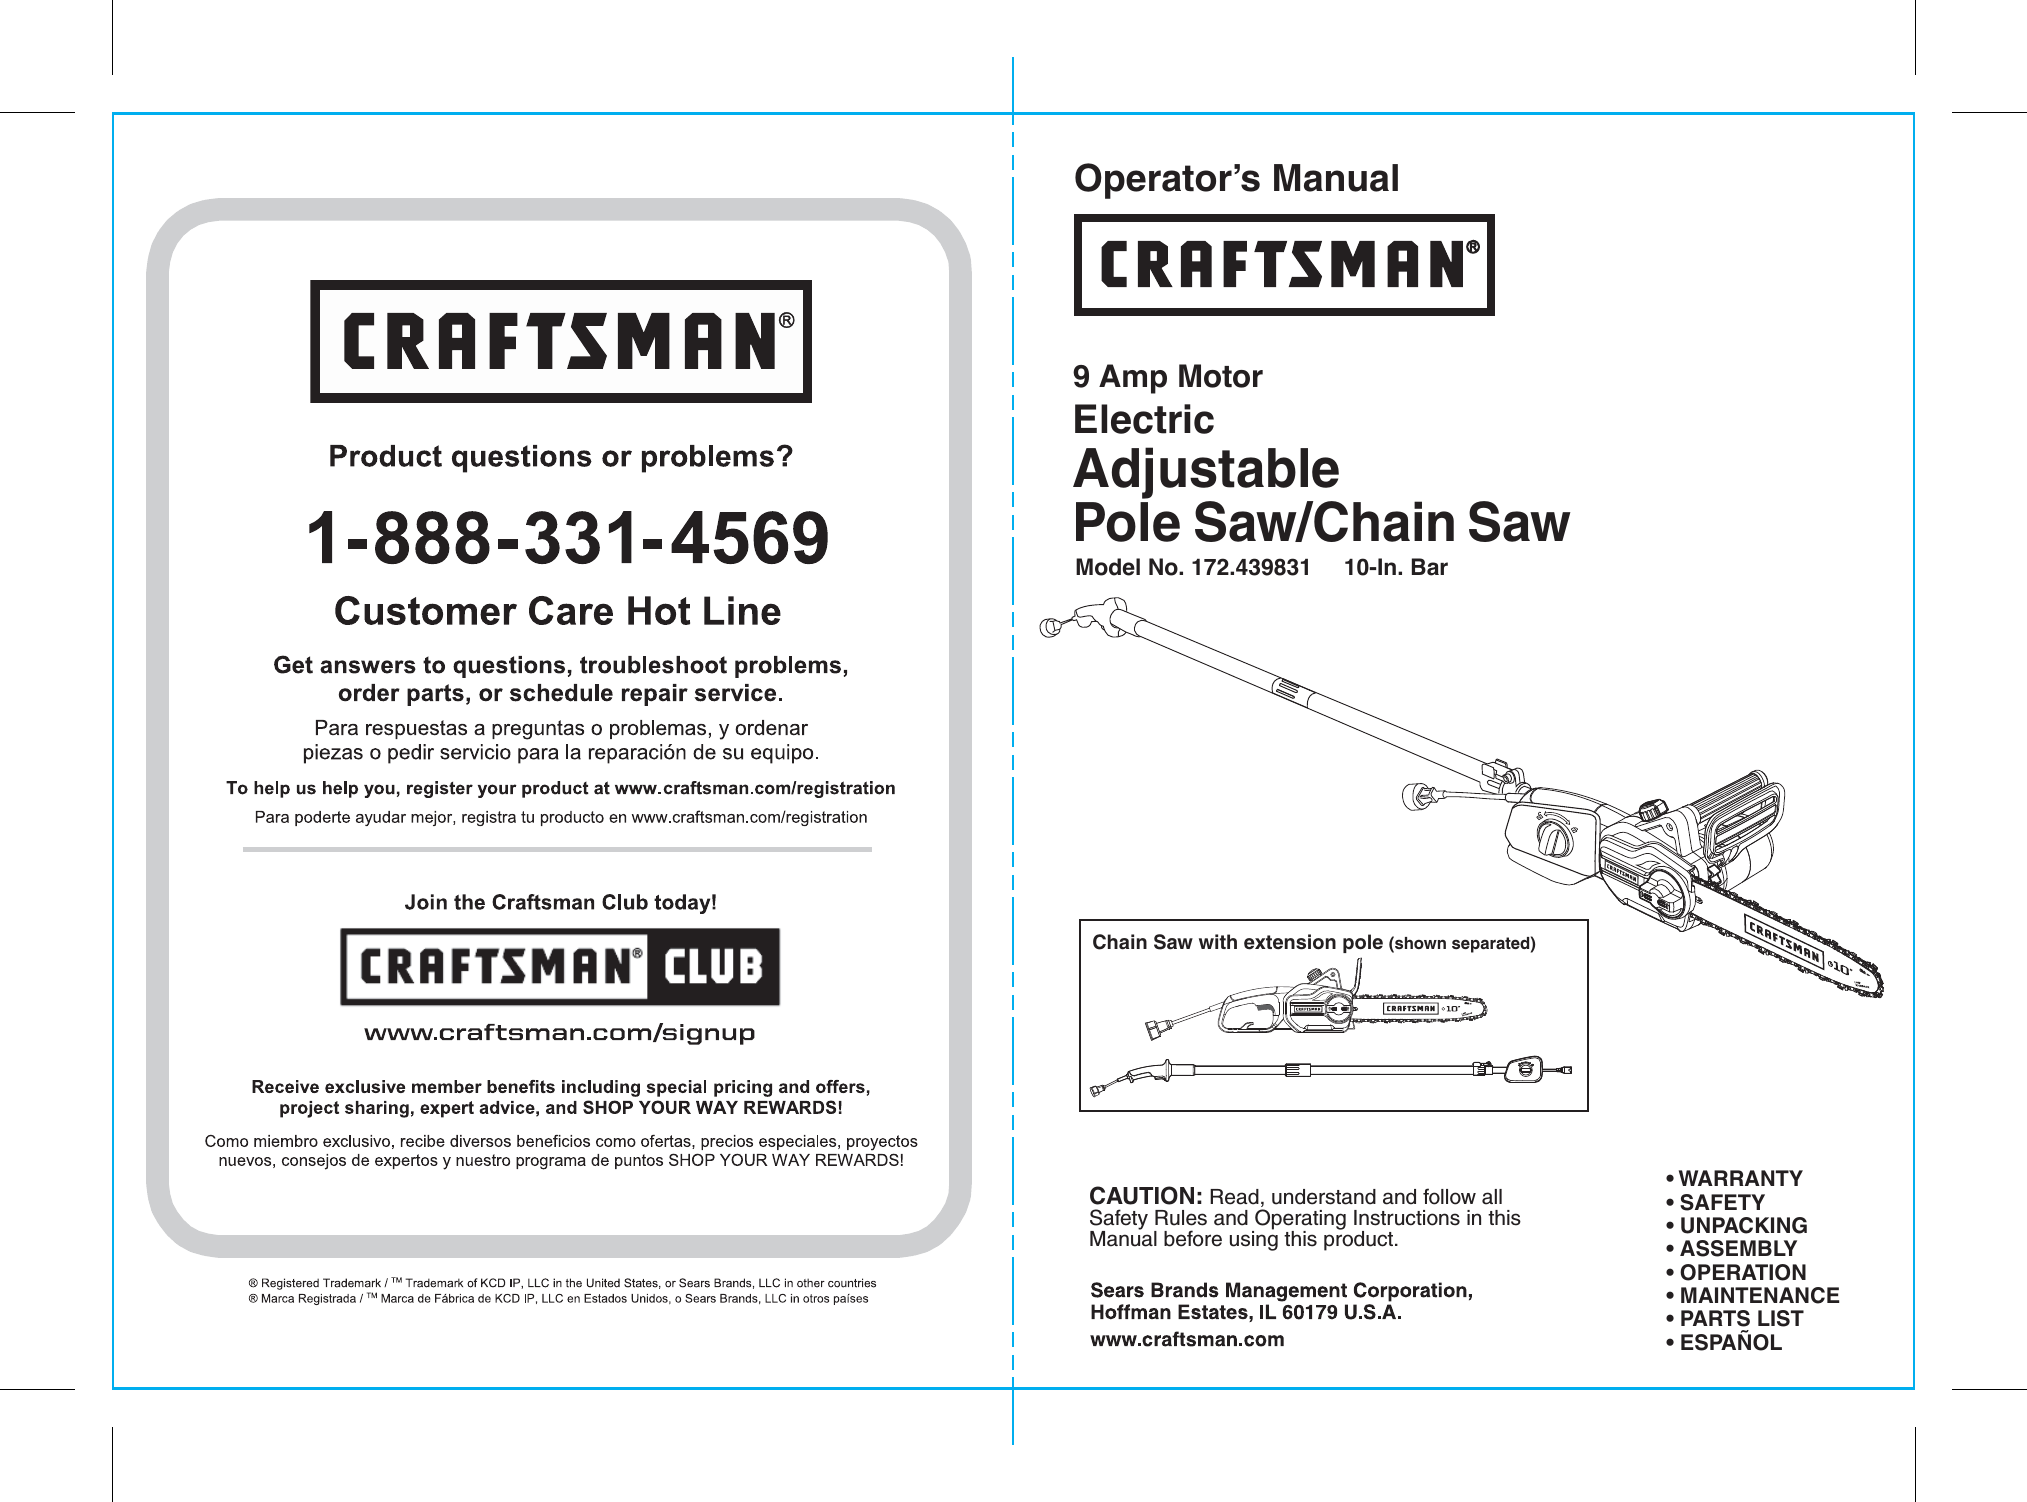 Craftsman 172439831 user manual electric chainsaw manuals and guides craftsman 172439831 user manual electric chainsaw manuals and guides 1705480l greentooth Images